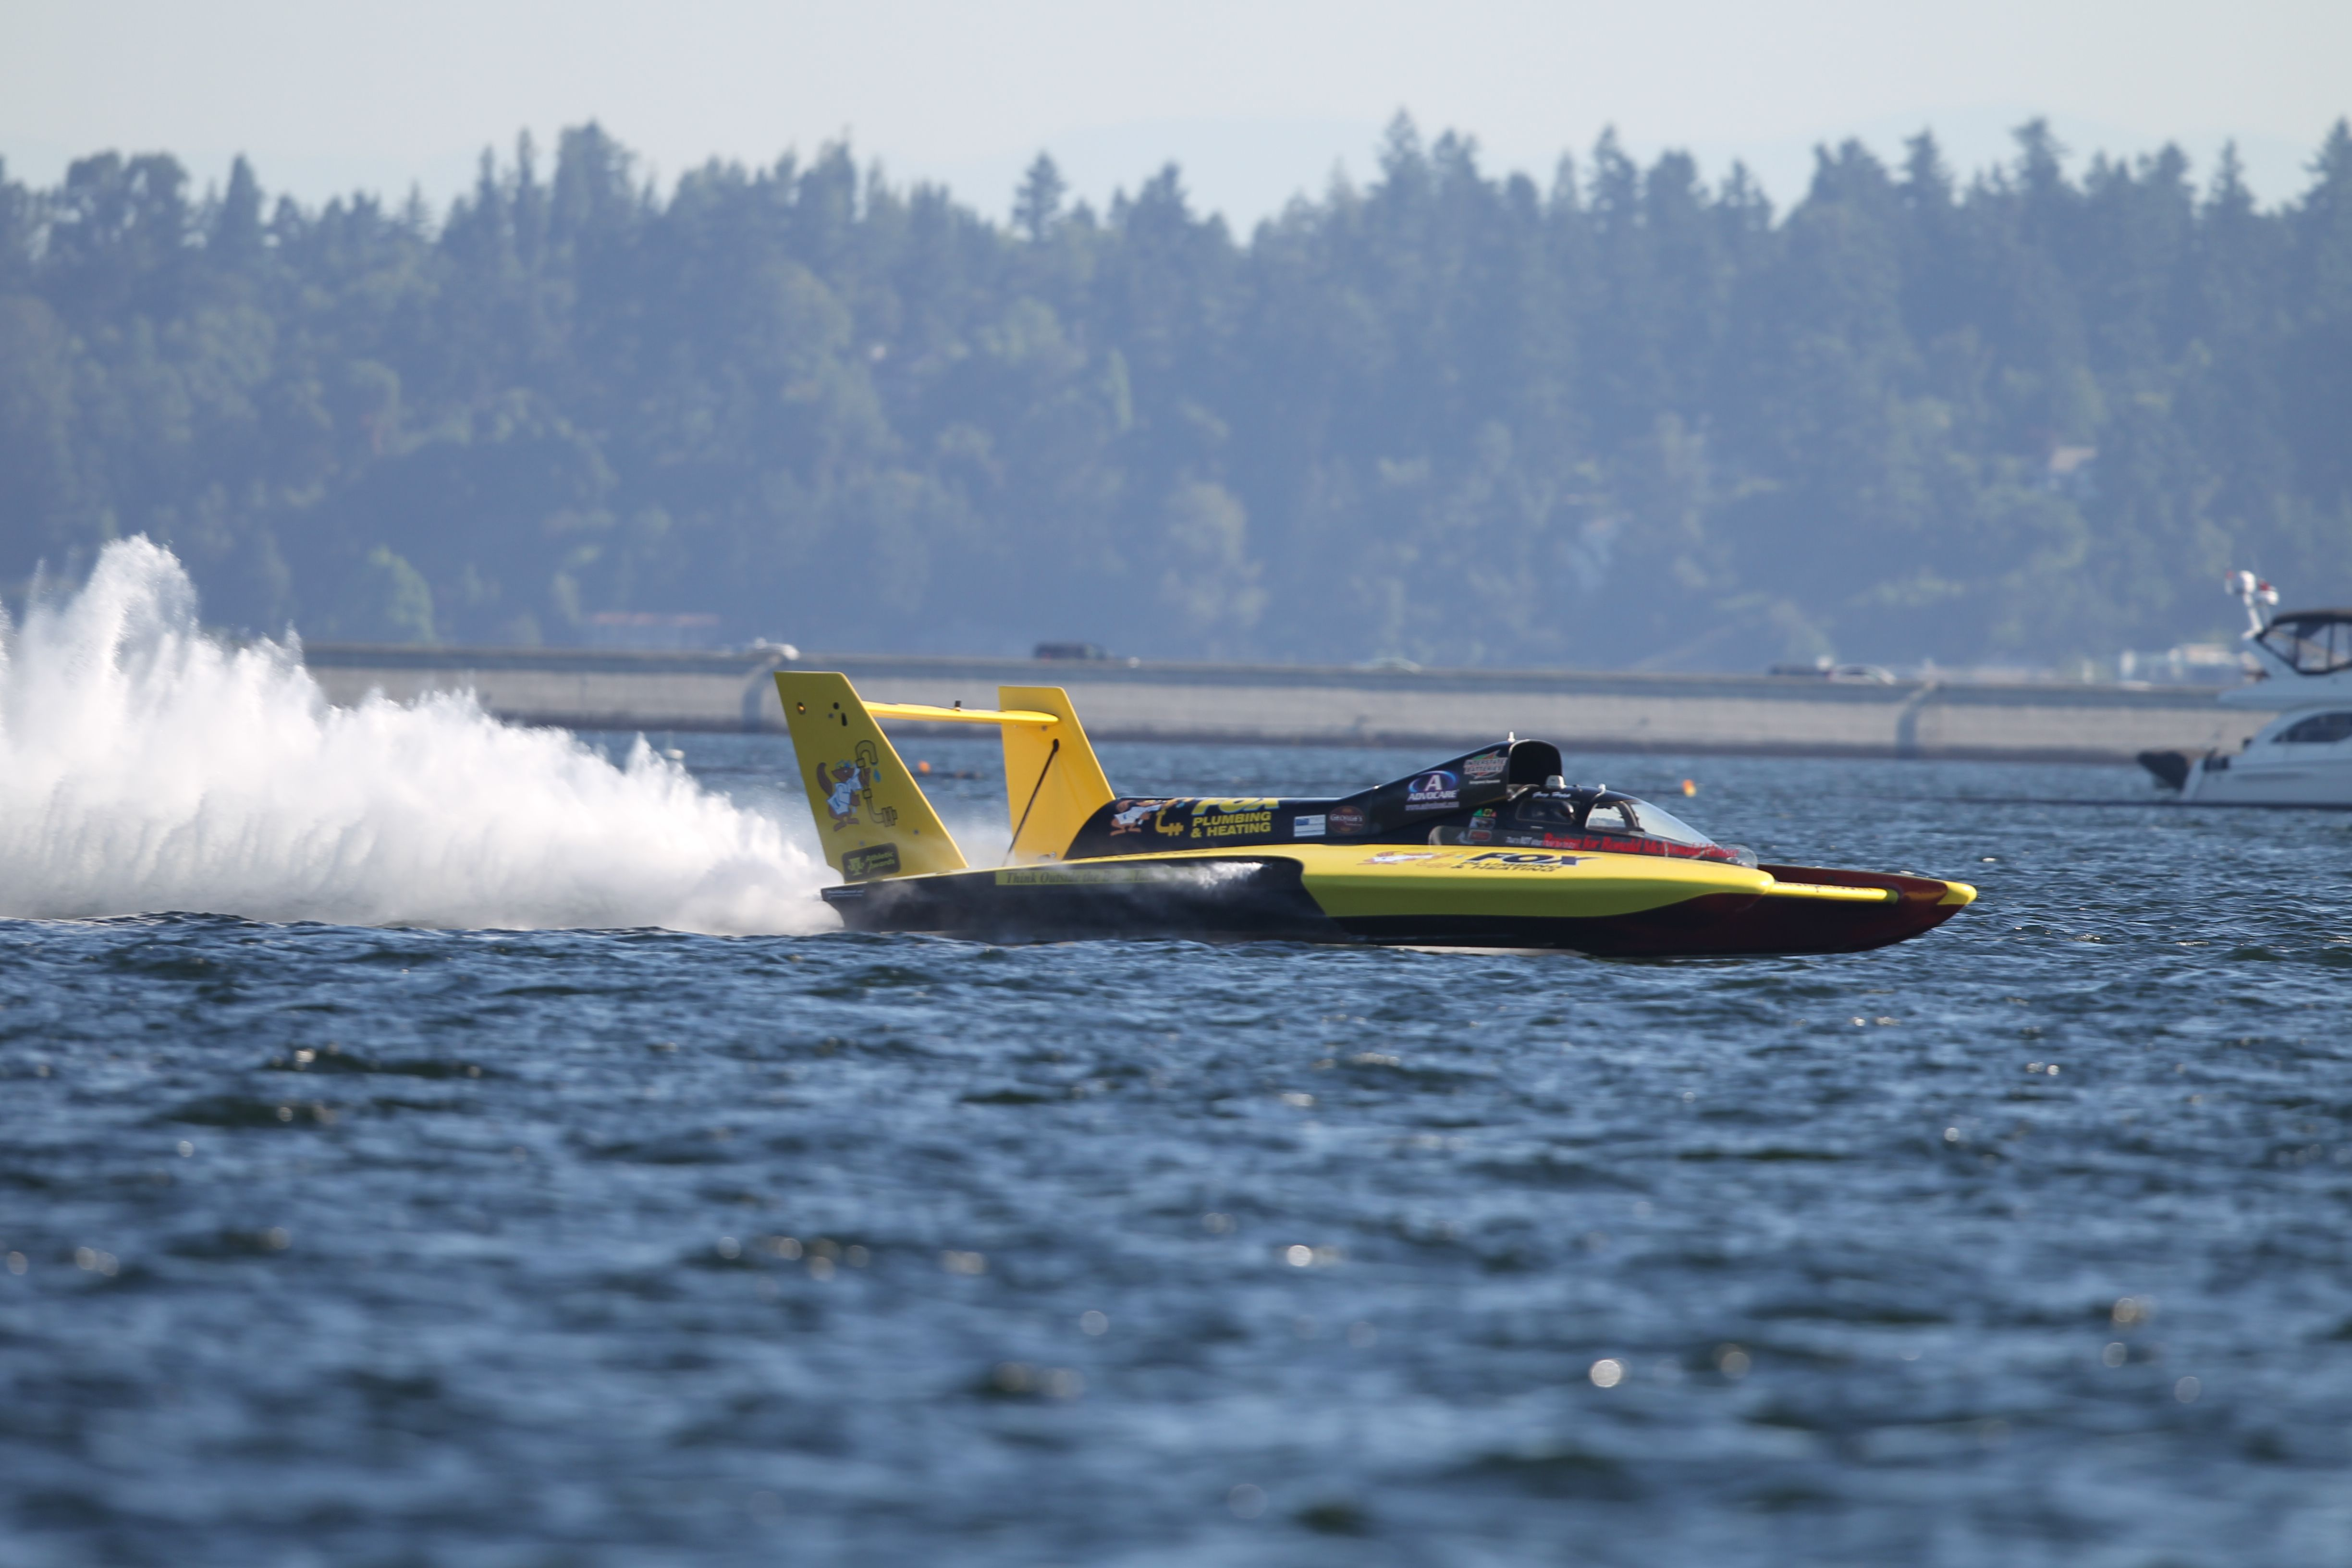 Pin by Seafair Festival on Albert Lee Appliance Cup